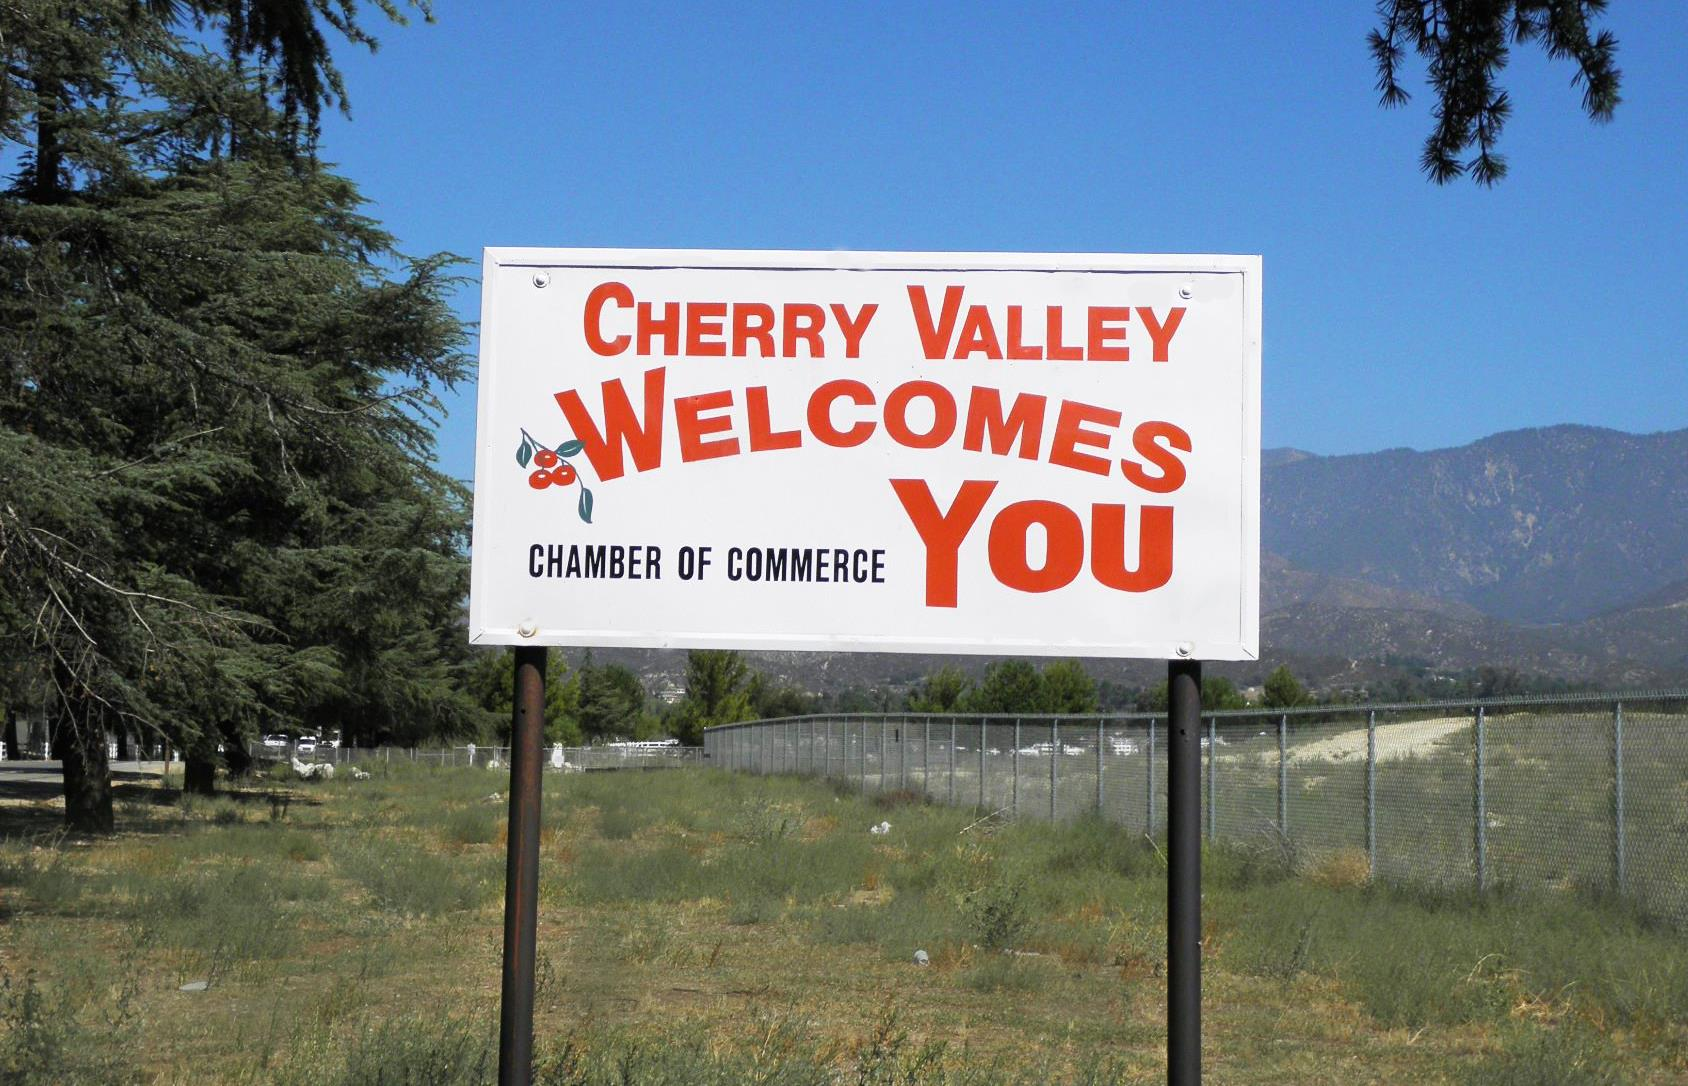 Cherry Valley Welcomes You